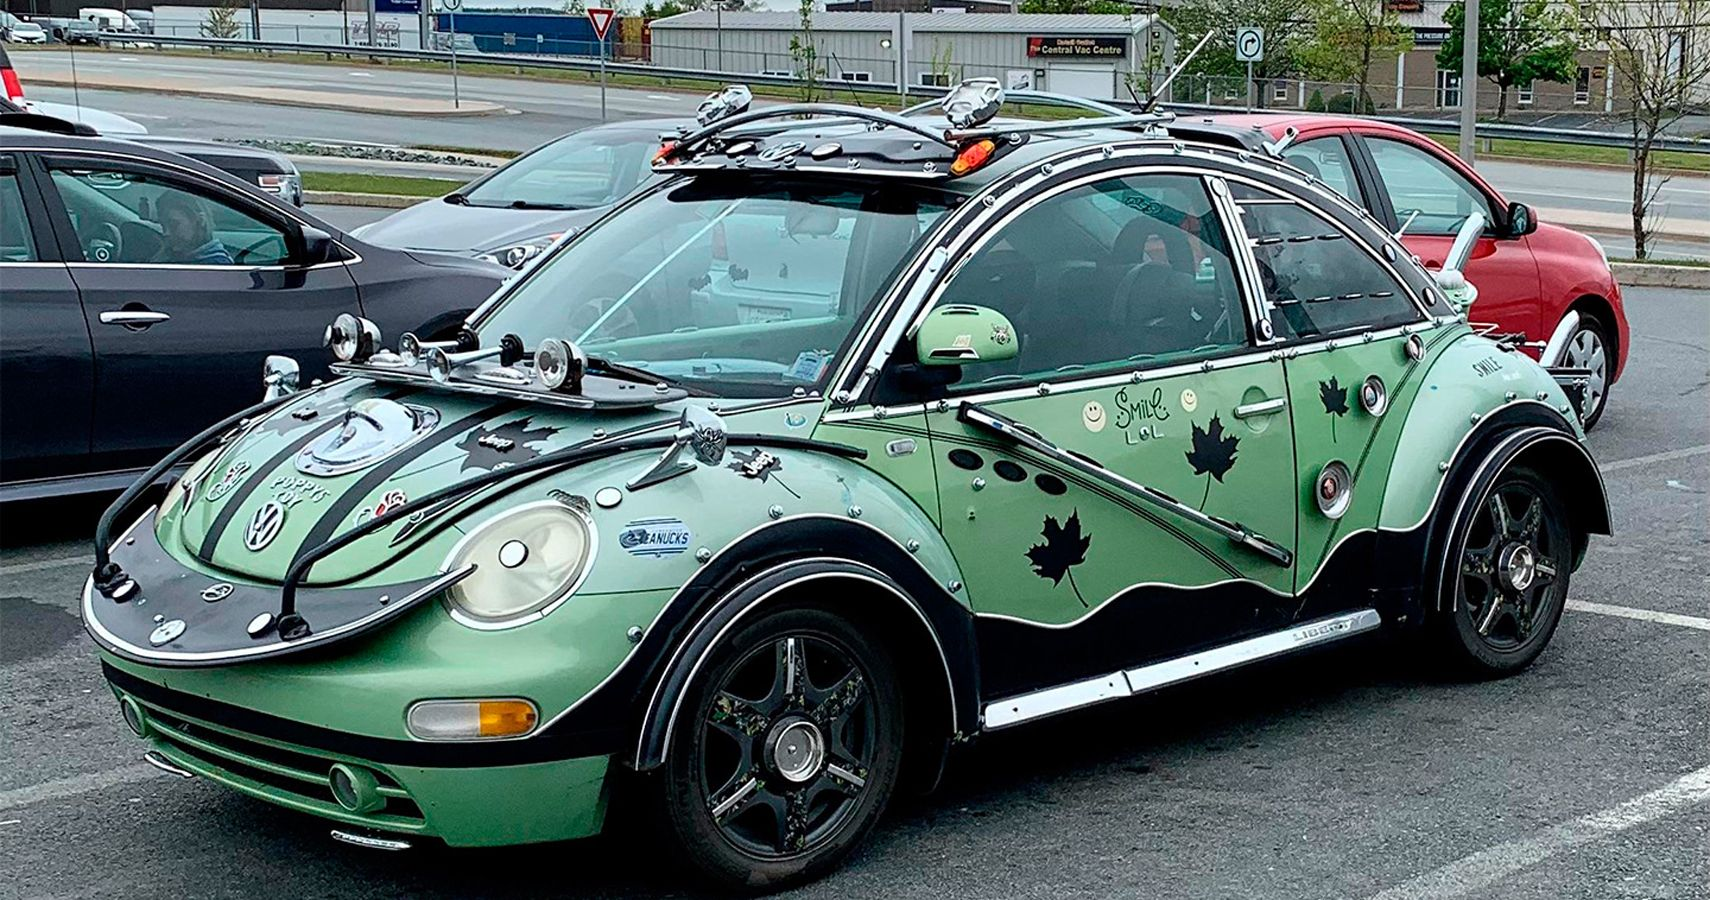 This Modified Volkswagen Beetle Raises So Many Questions